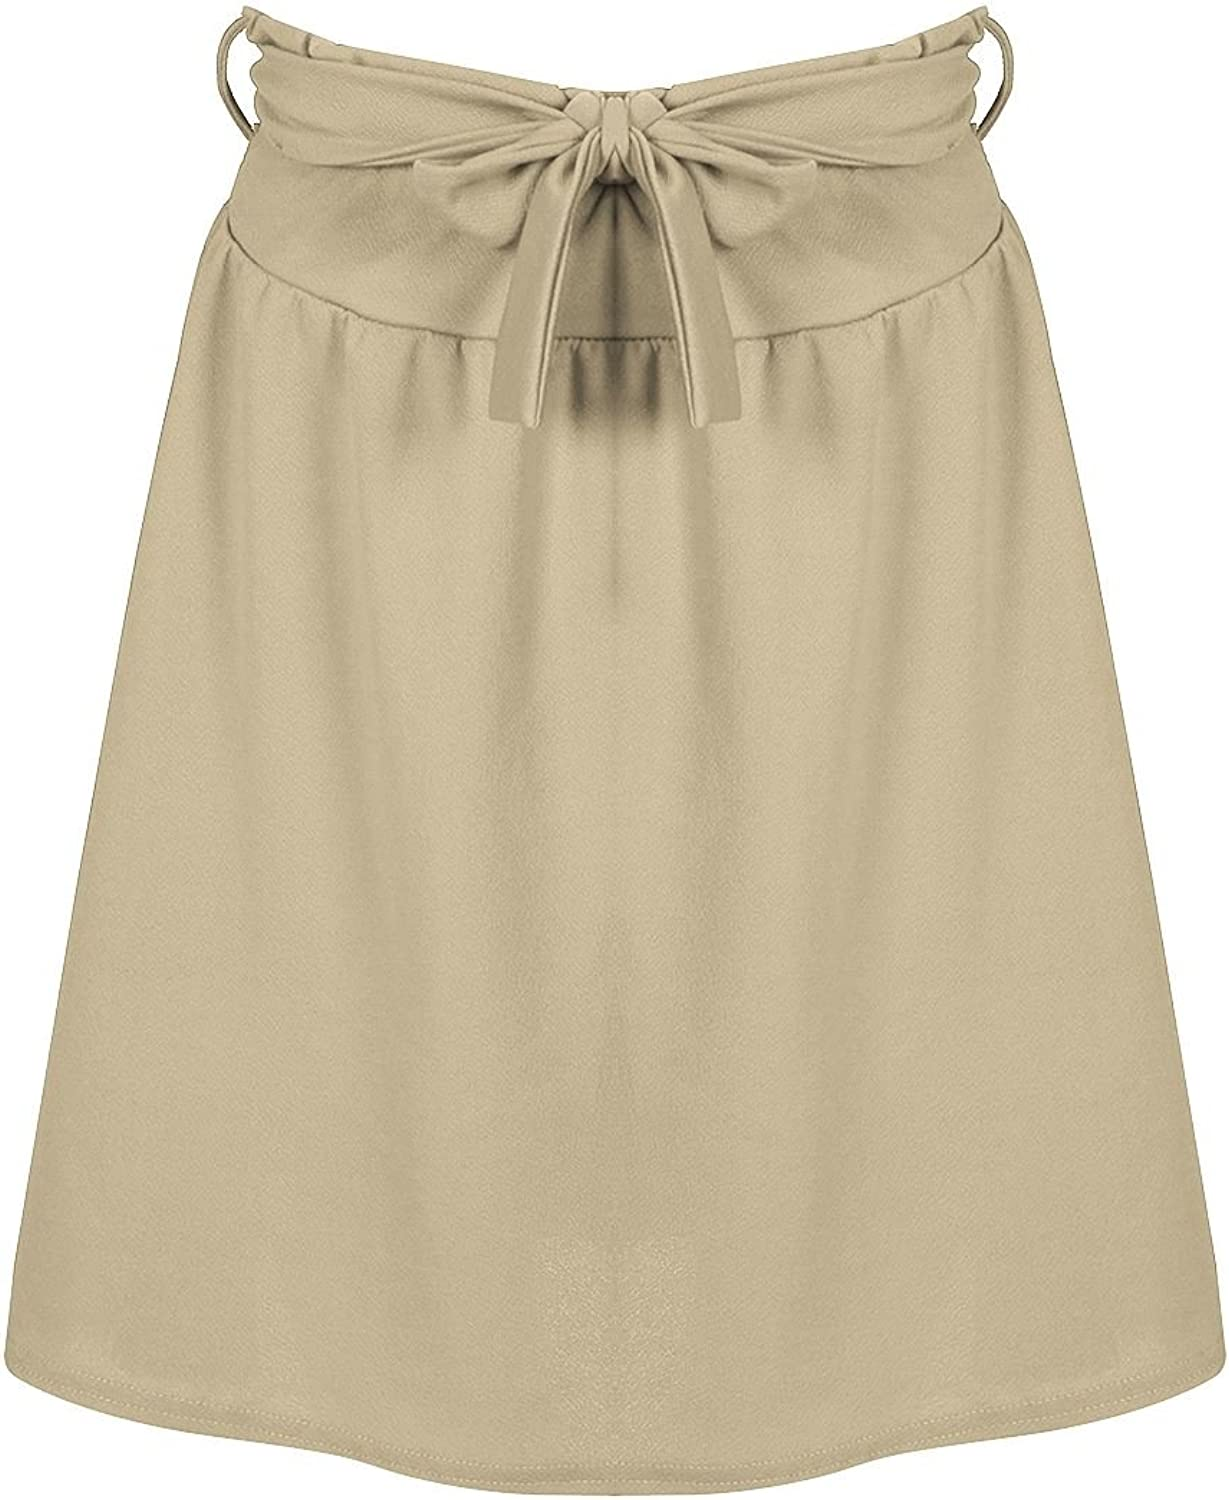 Be Jealous Womens Stretch High Waist Knot Tie Belted Swing Skater Flared Skirt